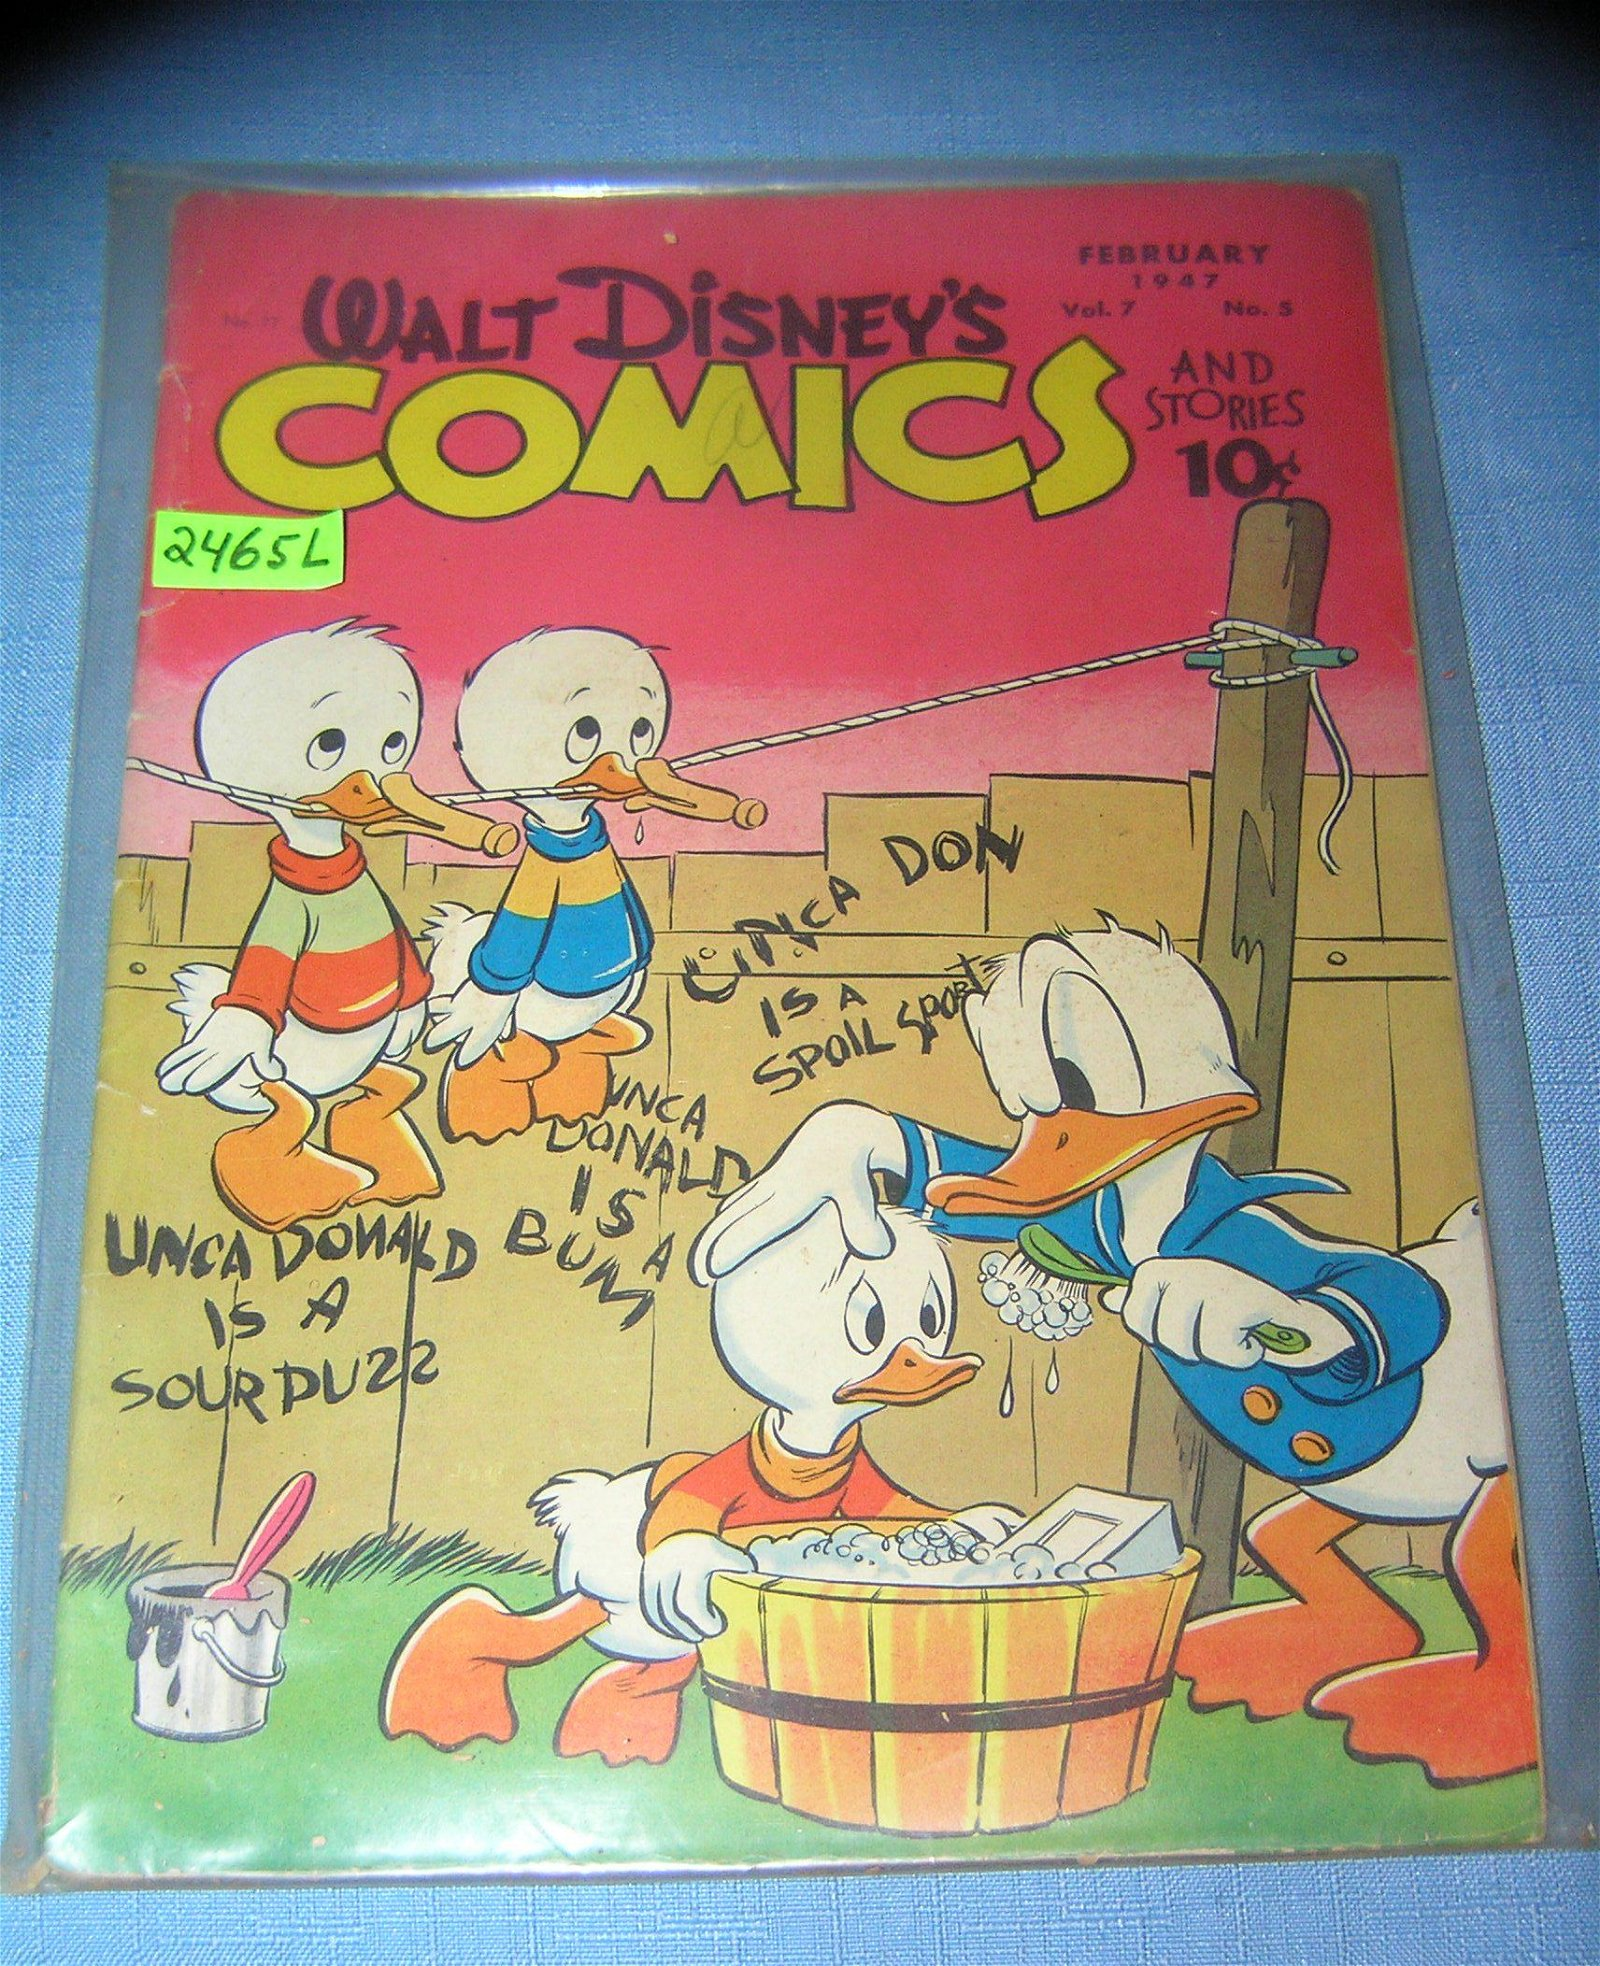 Disney comics and stories 10 cent comic book